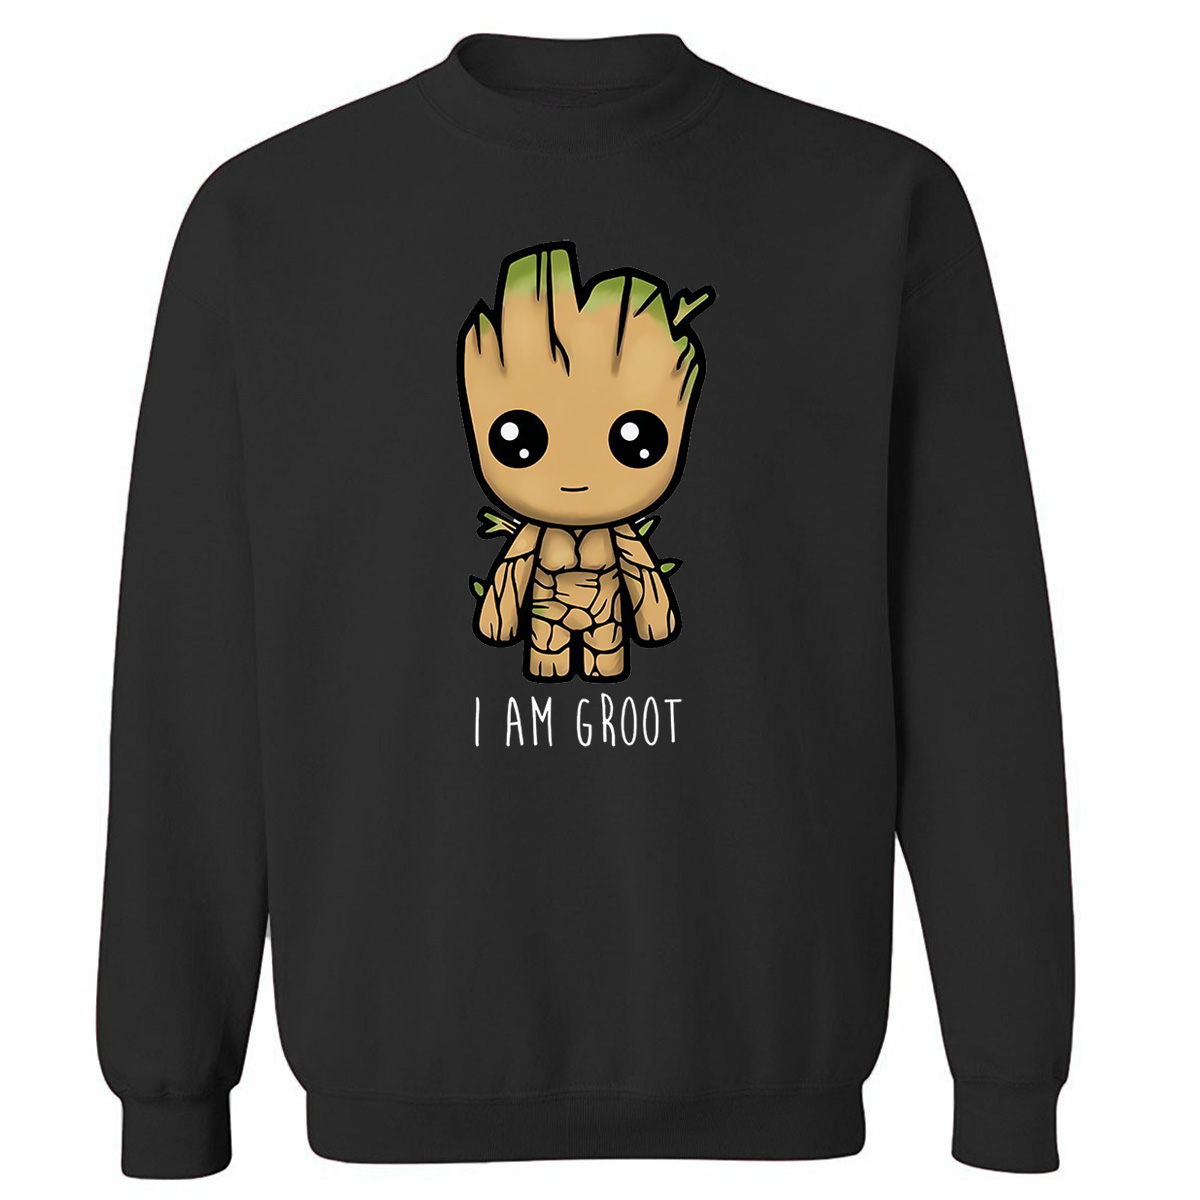 Men's Sweatshirt GROOT Pullover Men Avengers Harajuku Printed Fleece Autumn New-Fashion